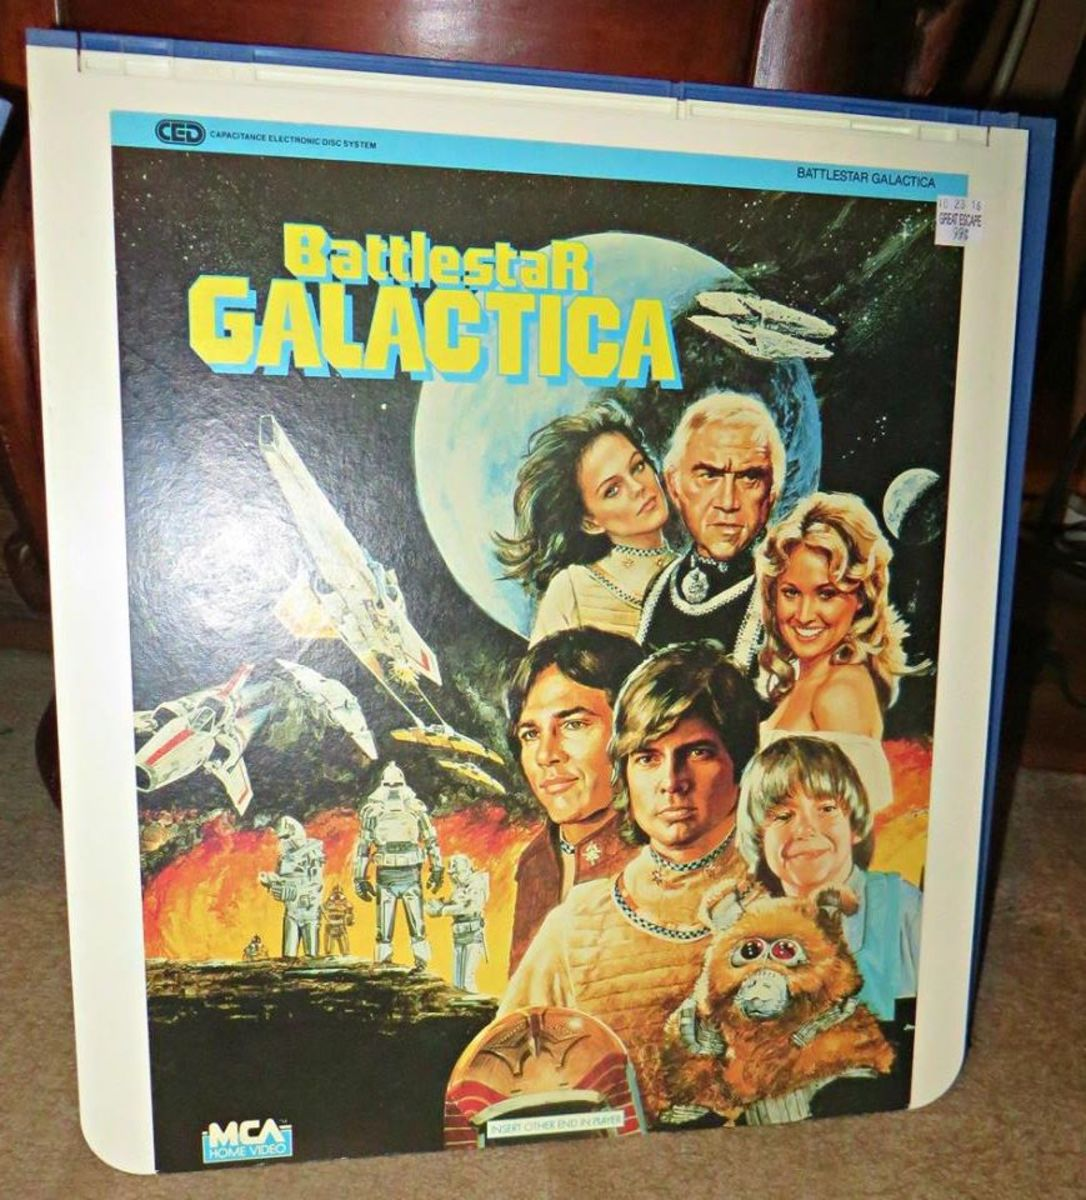 Selectavision CED, Battlestar Galactica is an American science fiction media franchise created by Glen A. Larson. The franchise began with the original television series in 1978 and was followed by a short-run sequel series (Galactica 1980).